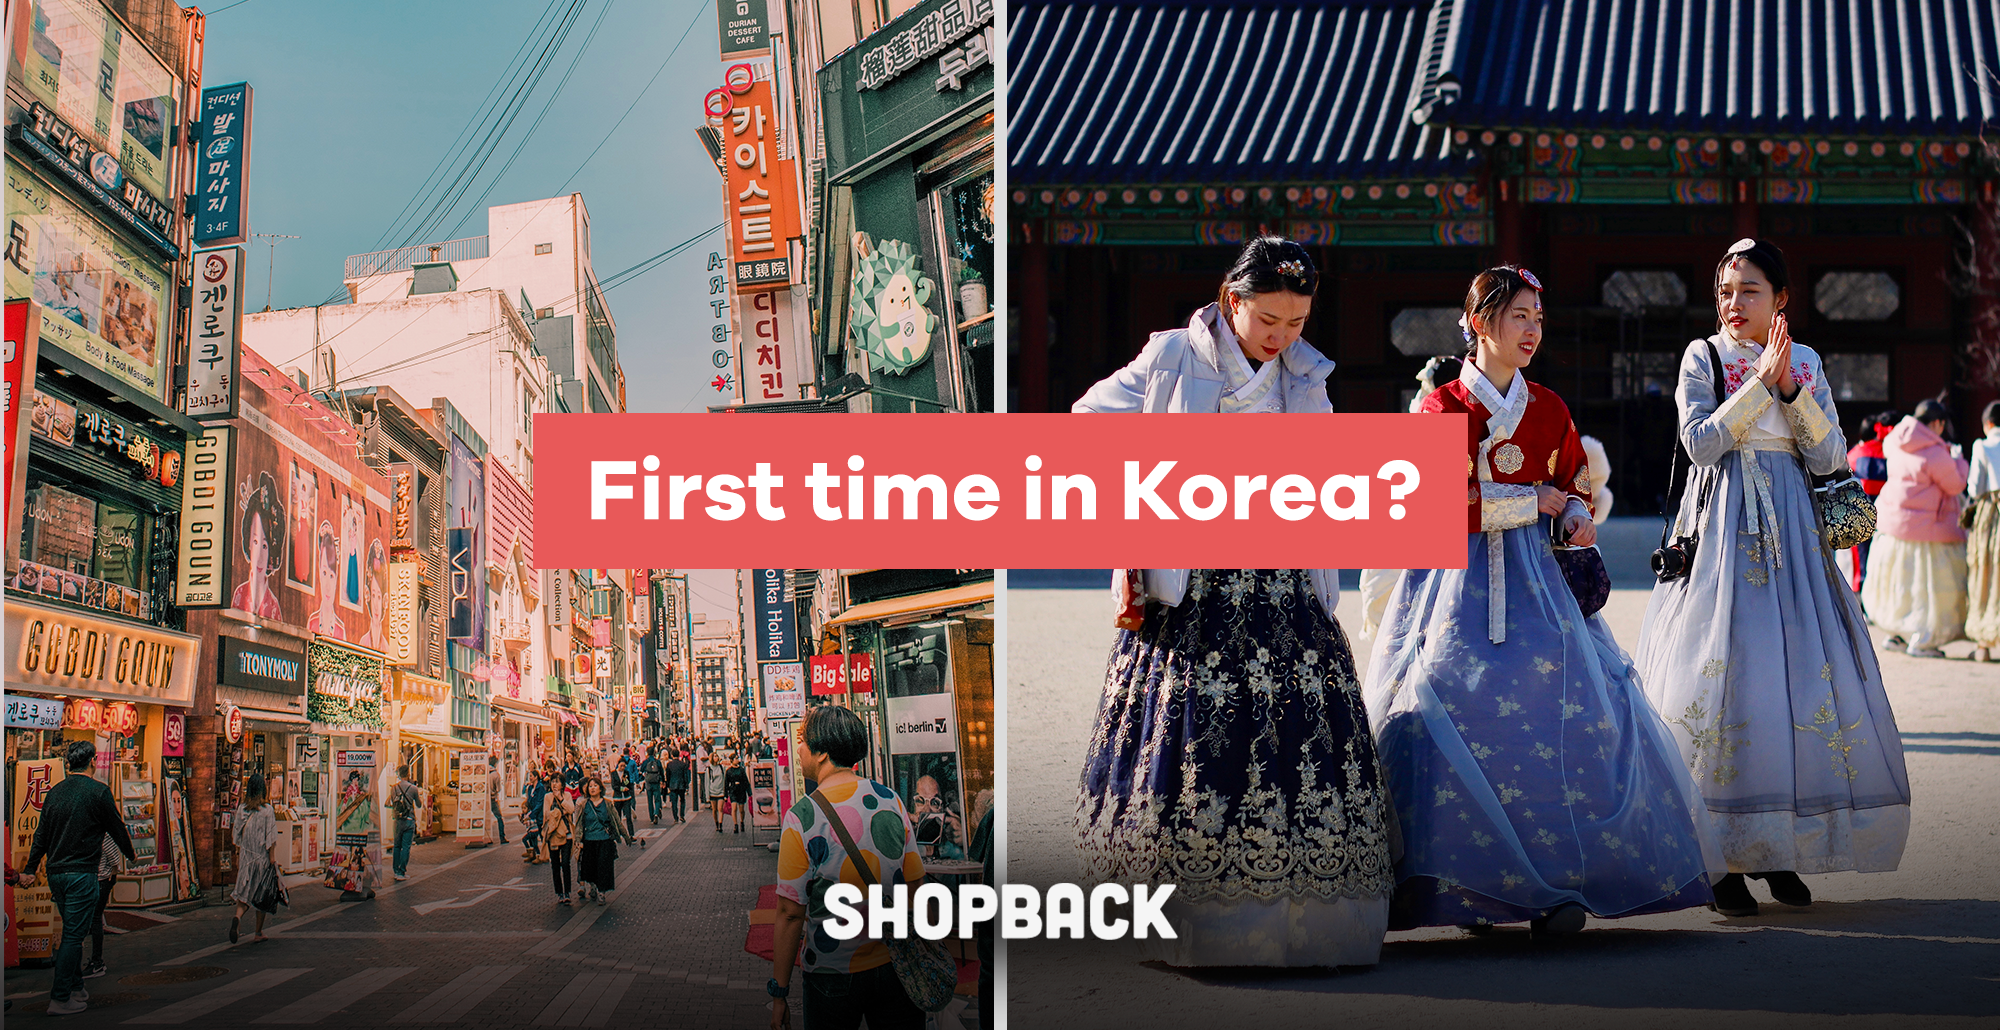 South Korea Travel Guide: How to Prepare As a First Time Traveler